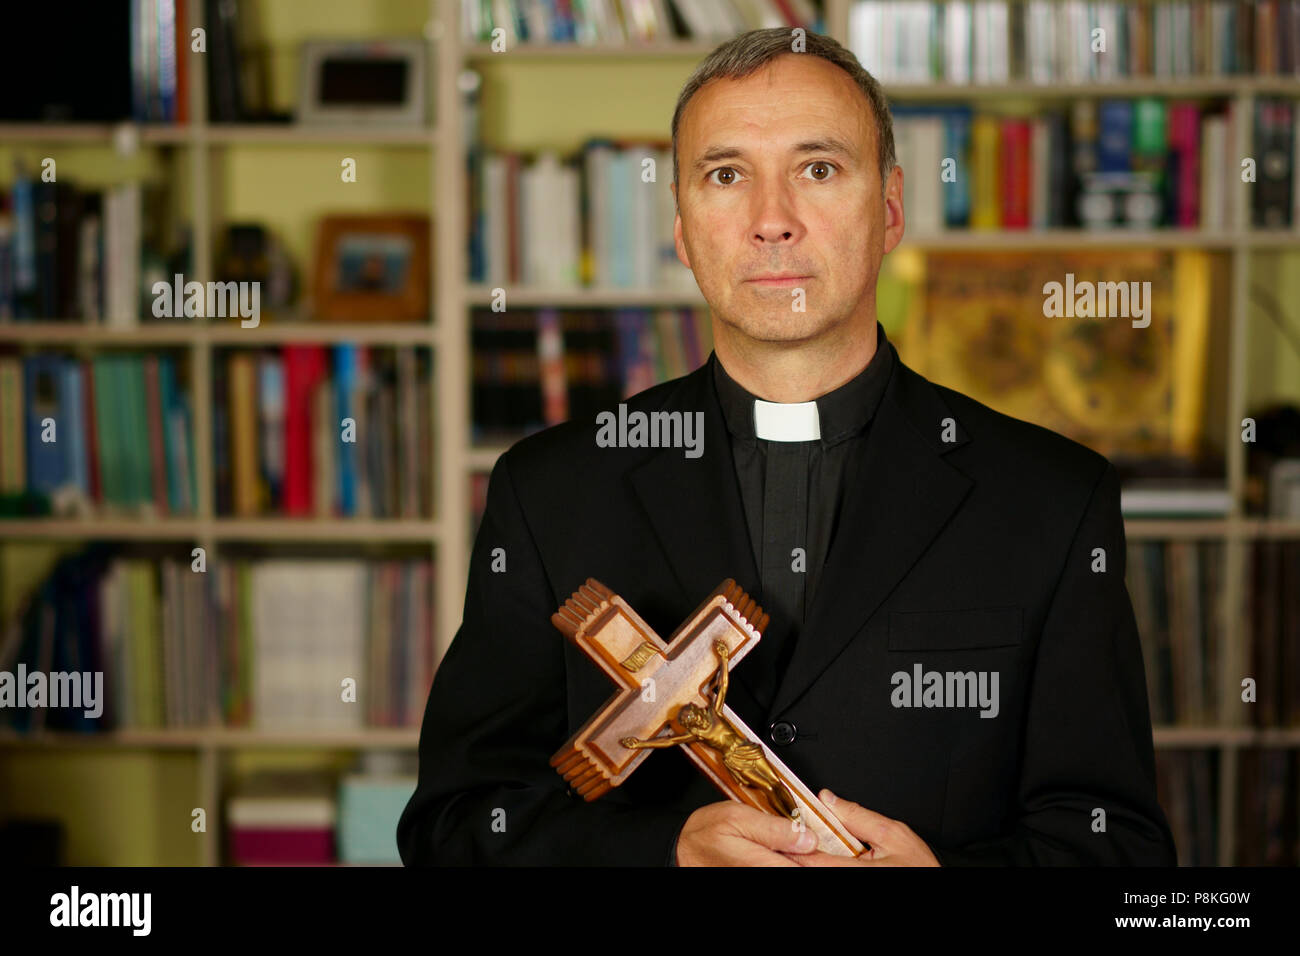 A good looking serious catholic priest is showing a crucifix. He seriously looks at us with interest, pensiveness and proselytising. - Stock Image